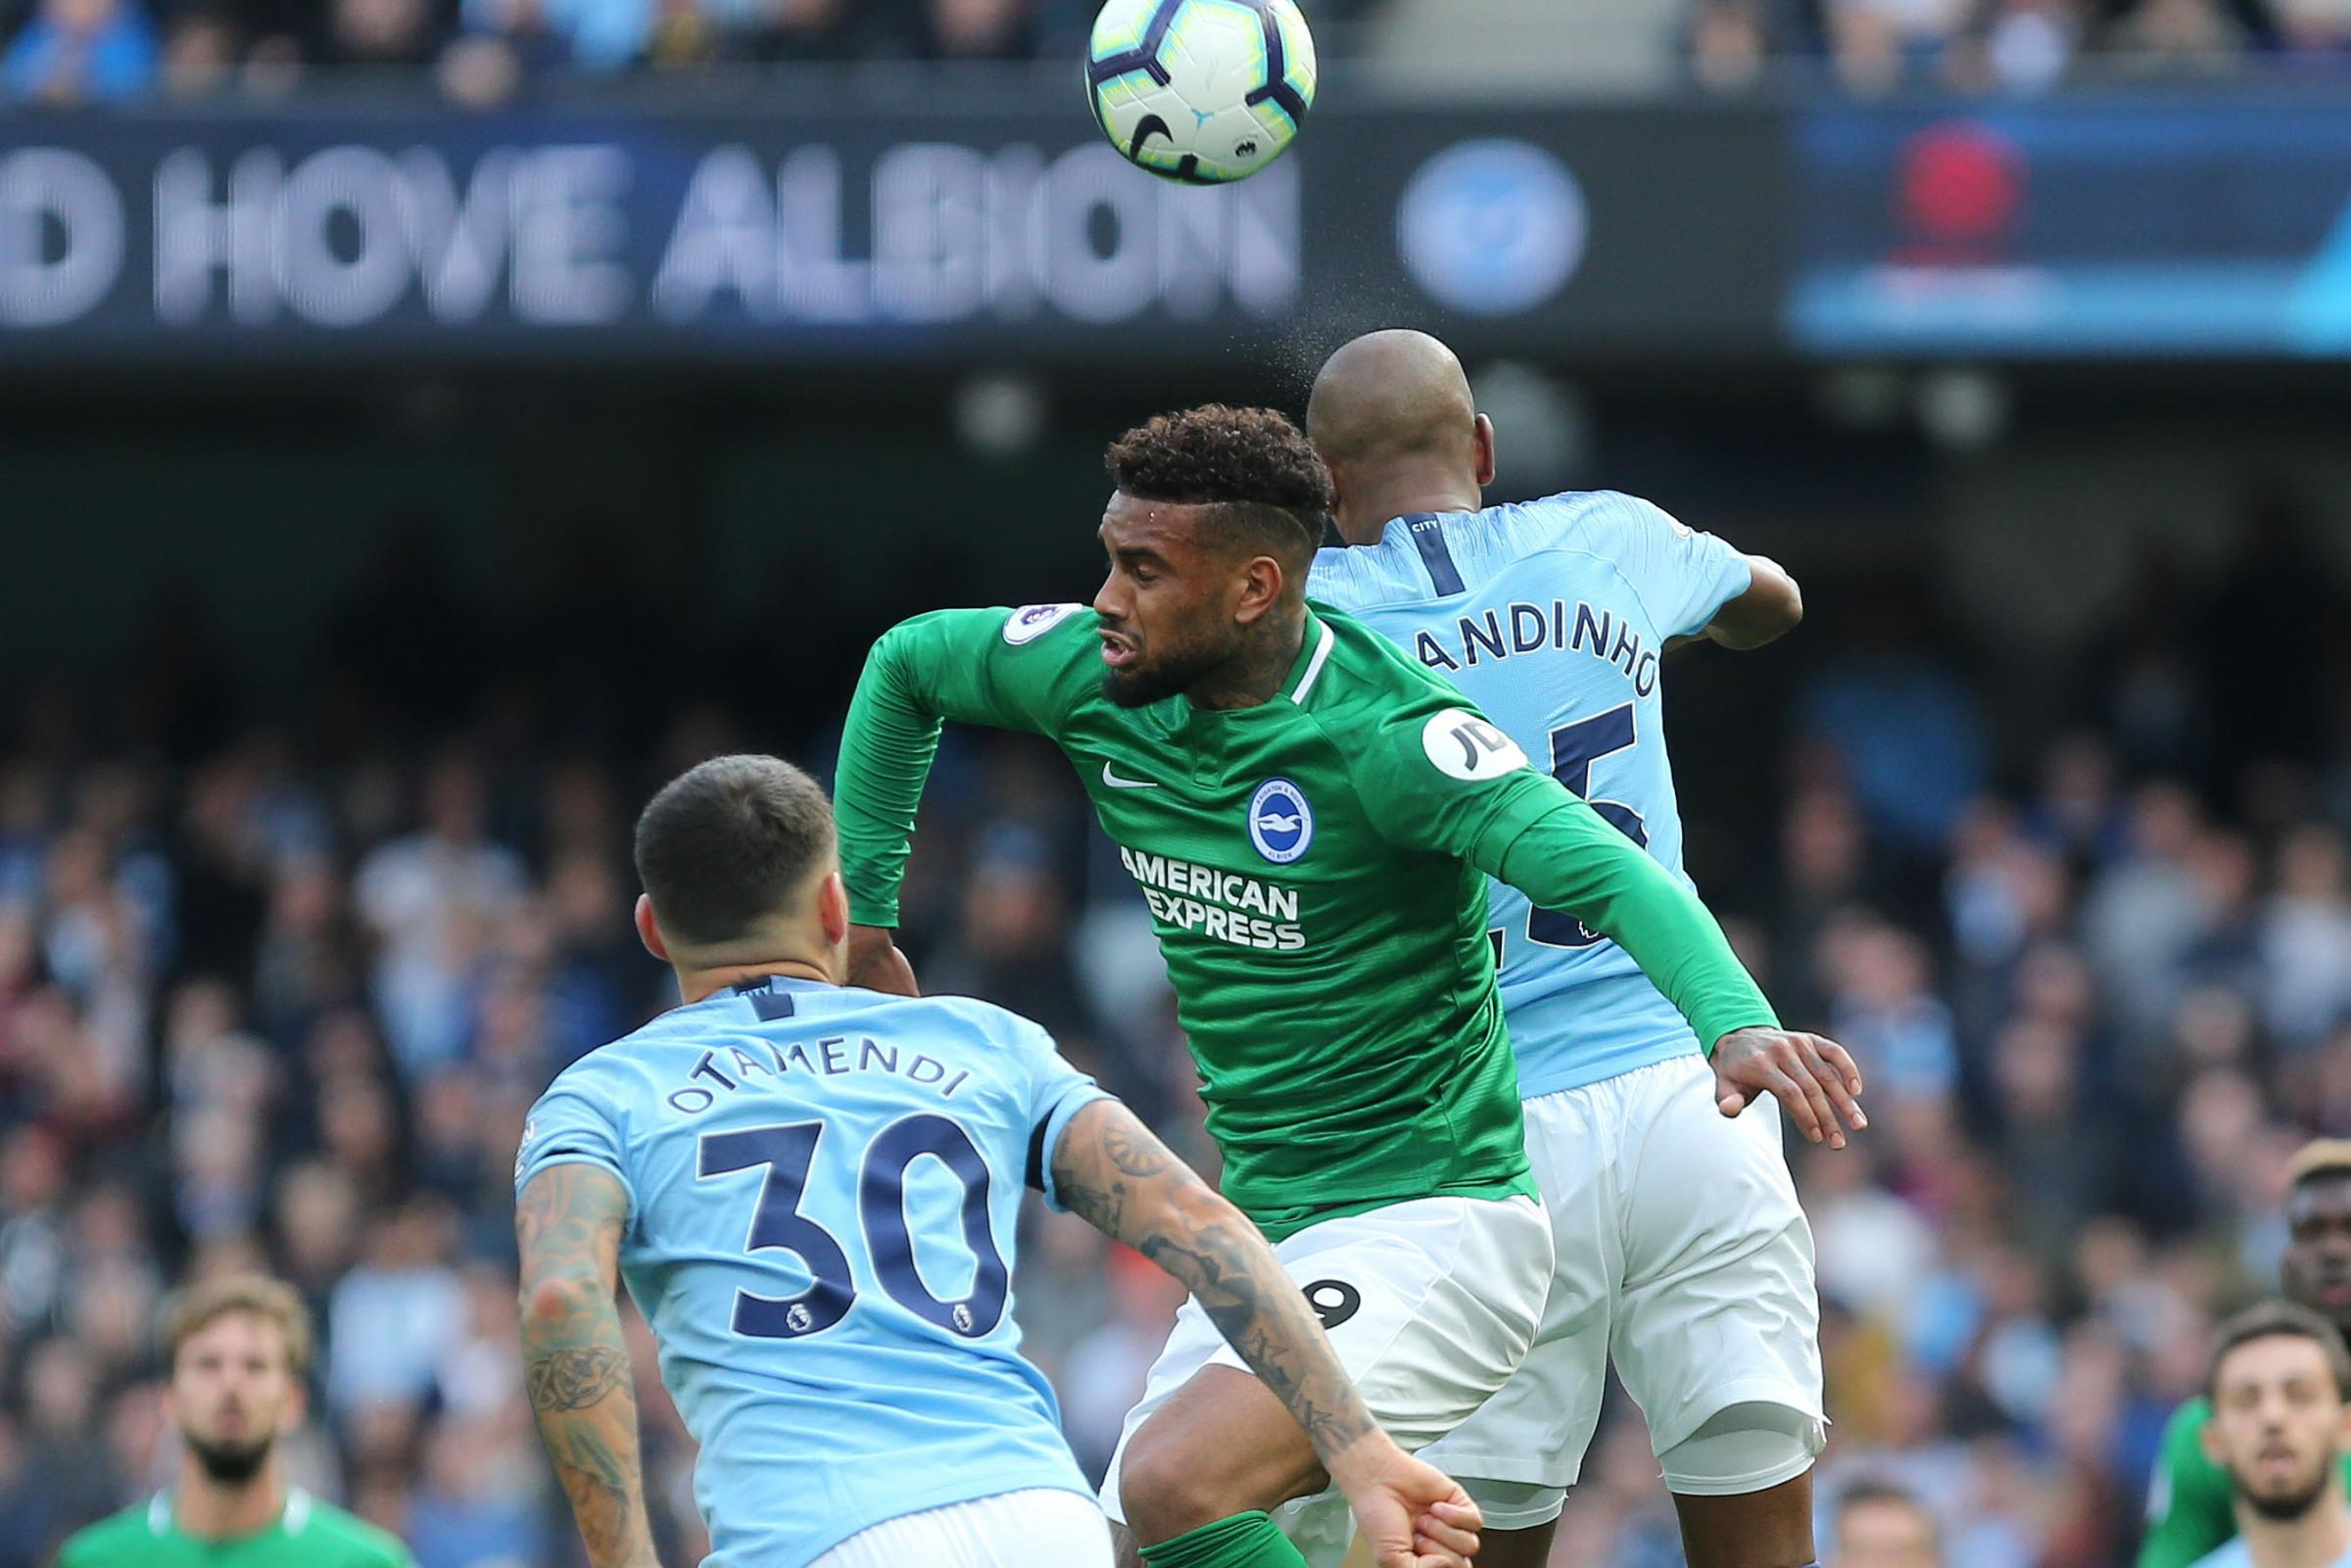 Propper feels for Albion striker Locadia